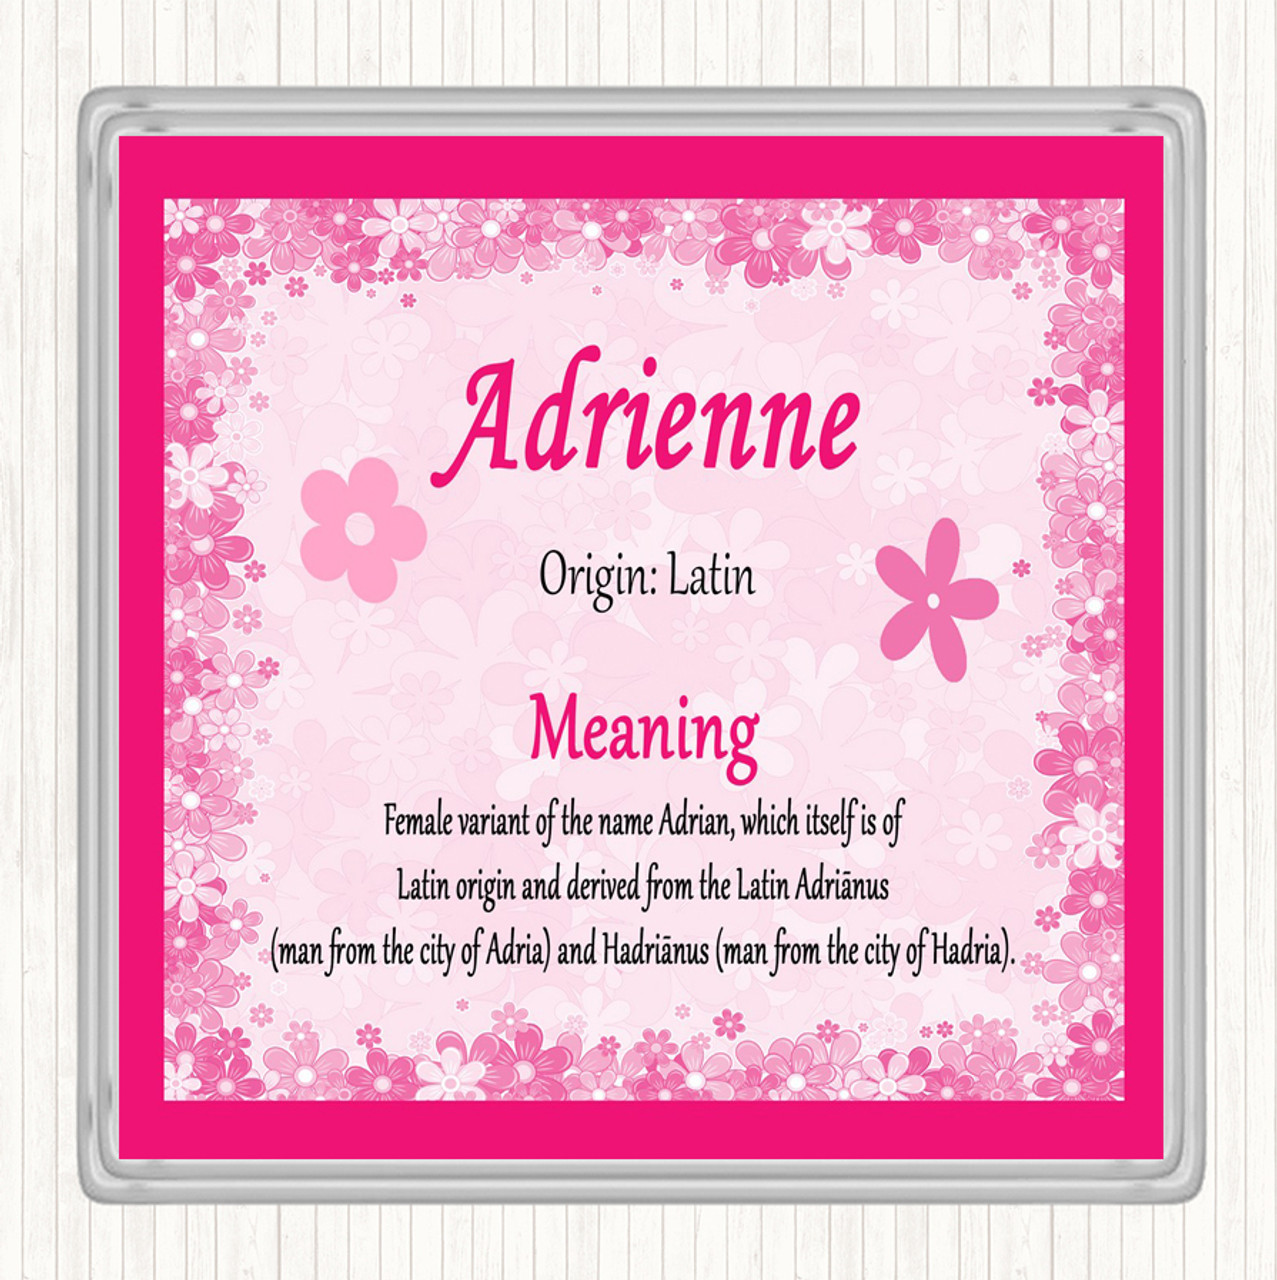 the meaning of adrienne